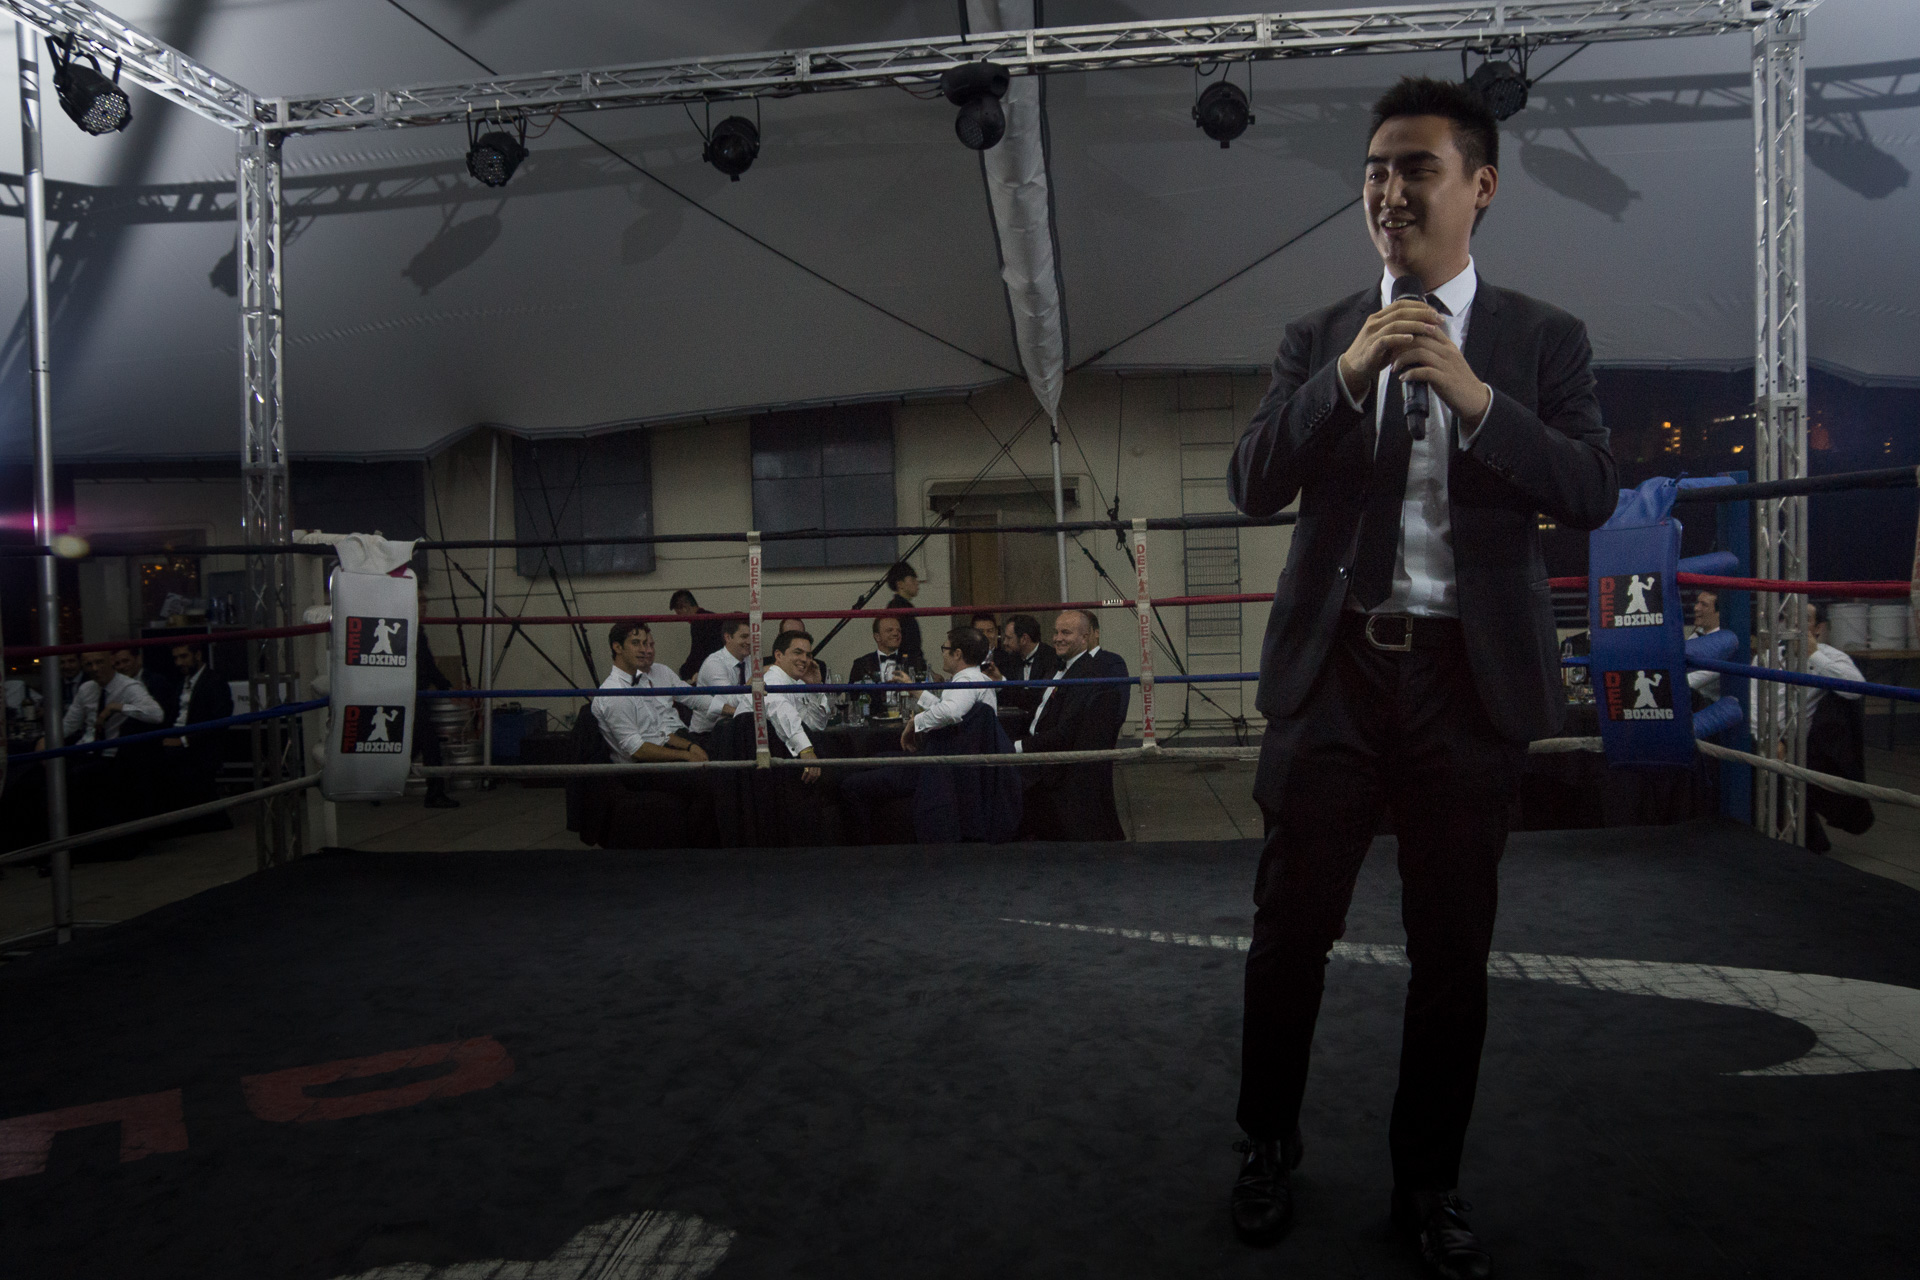 How many other people get to perform in a boxing ring?